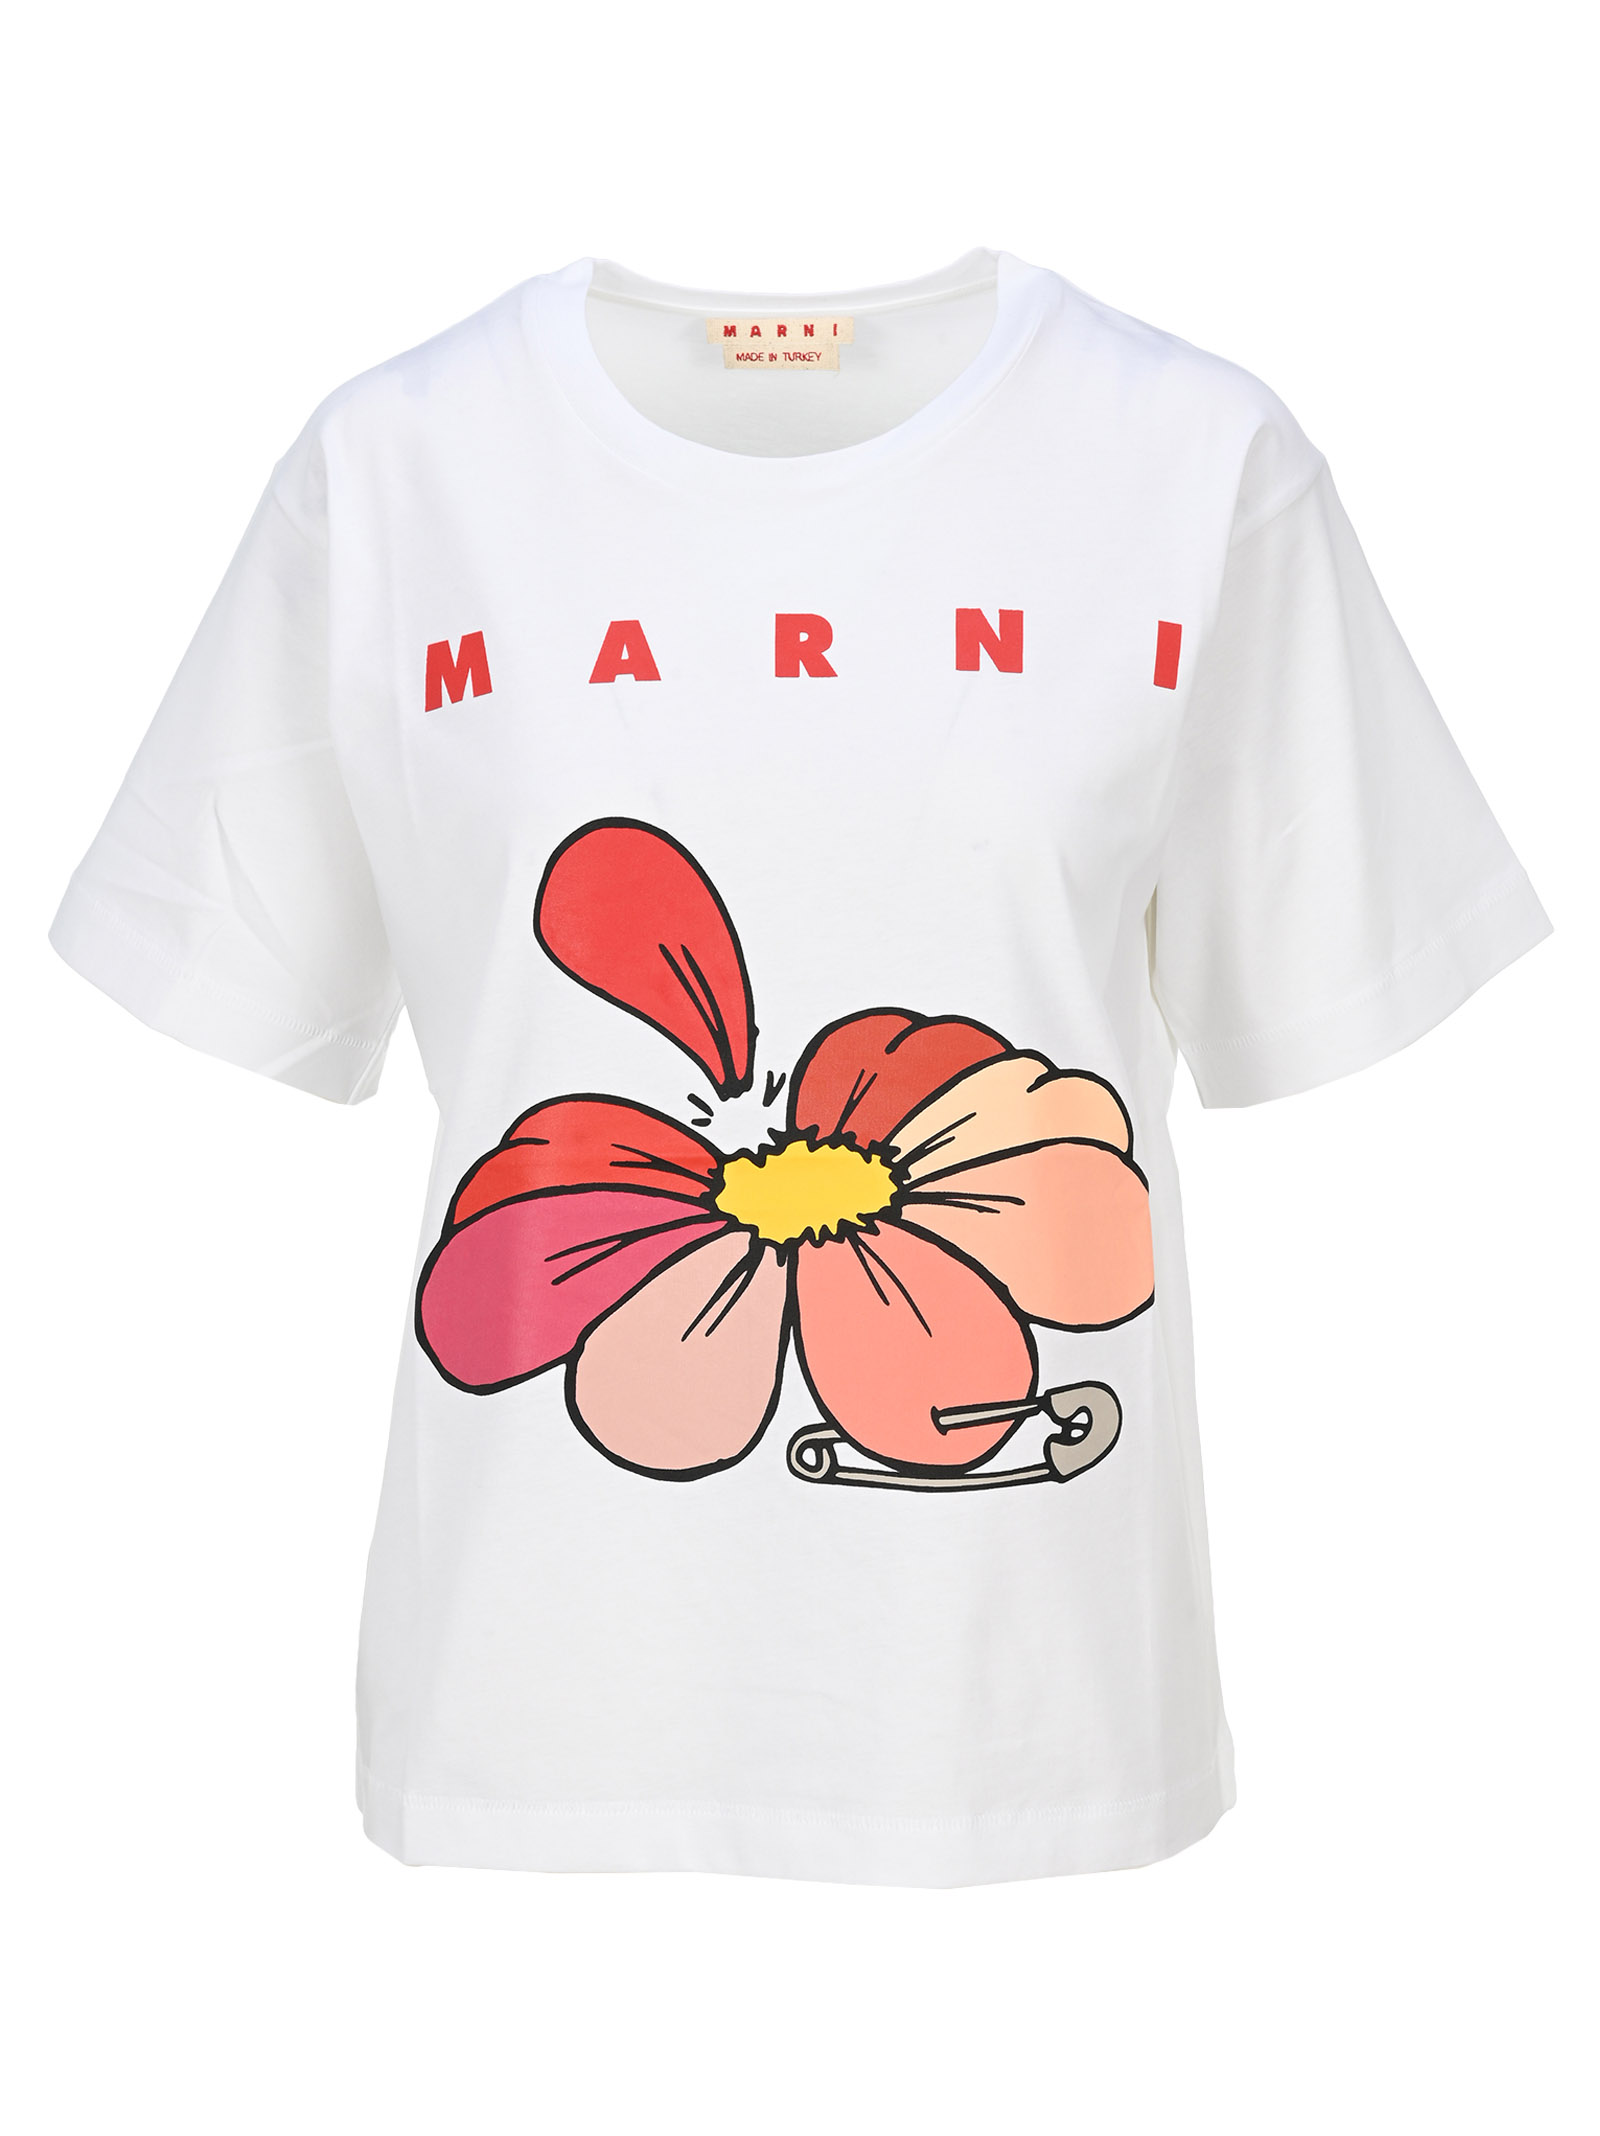 MARNI COTTON JERSEY OVERSIZED T-SHIRT